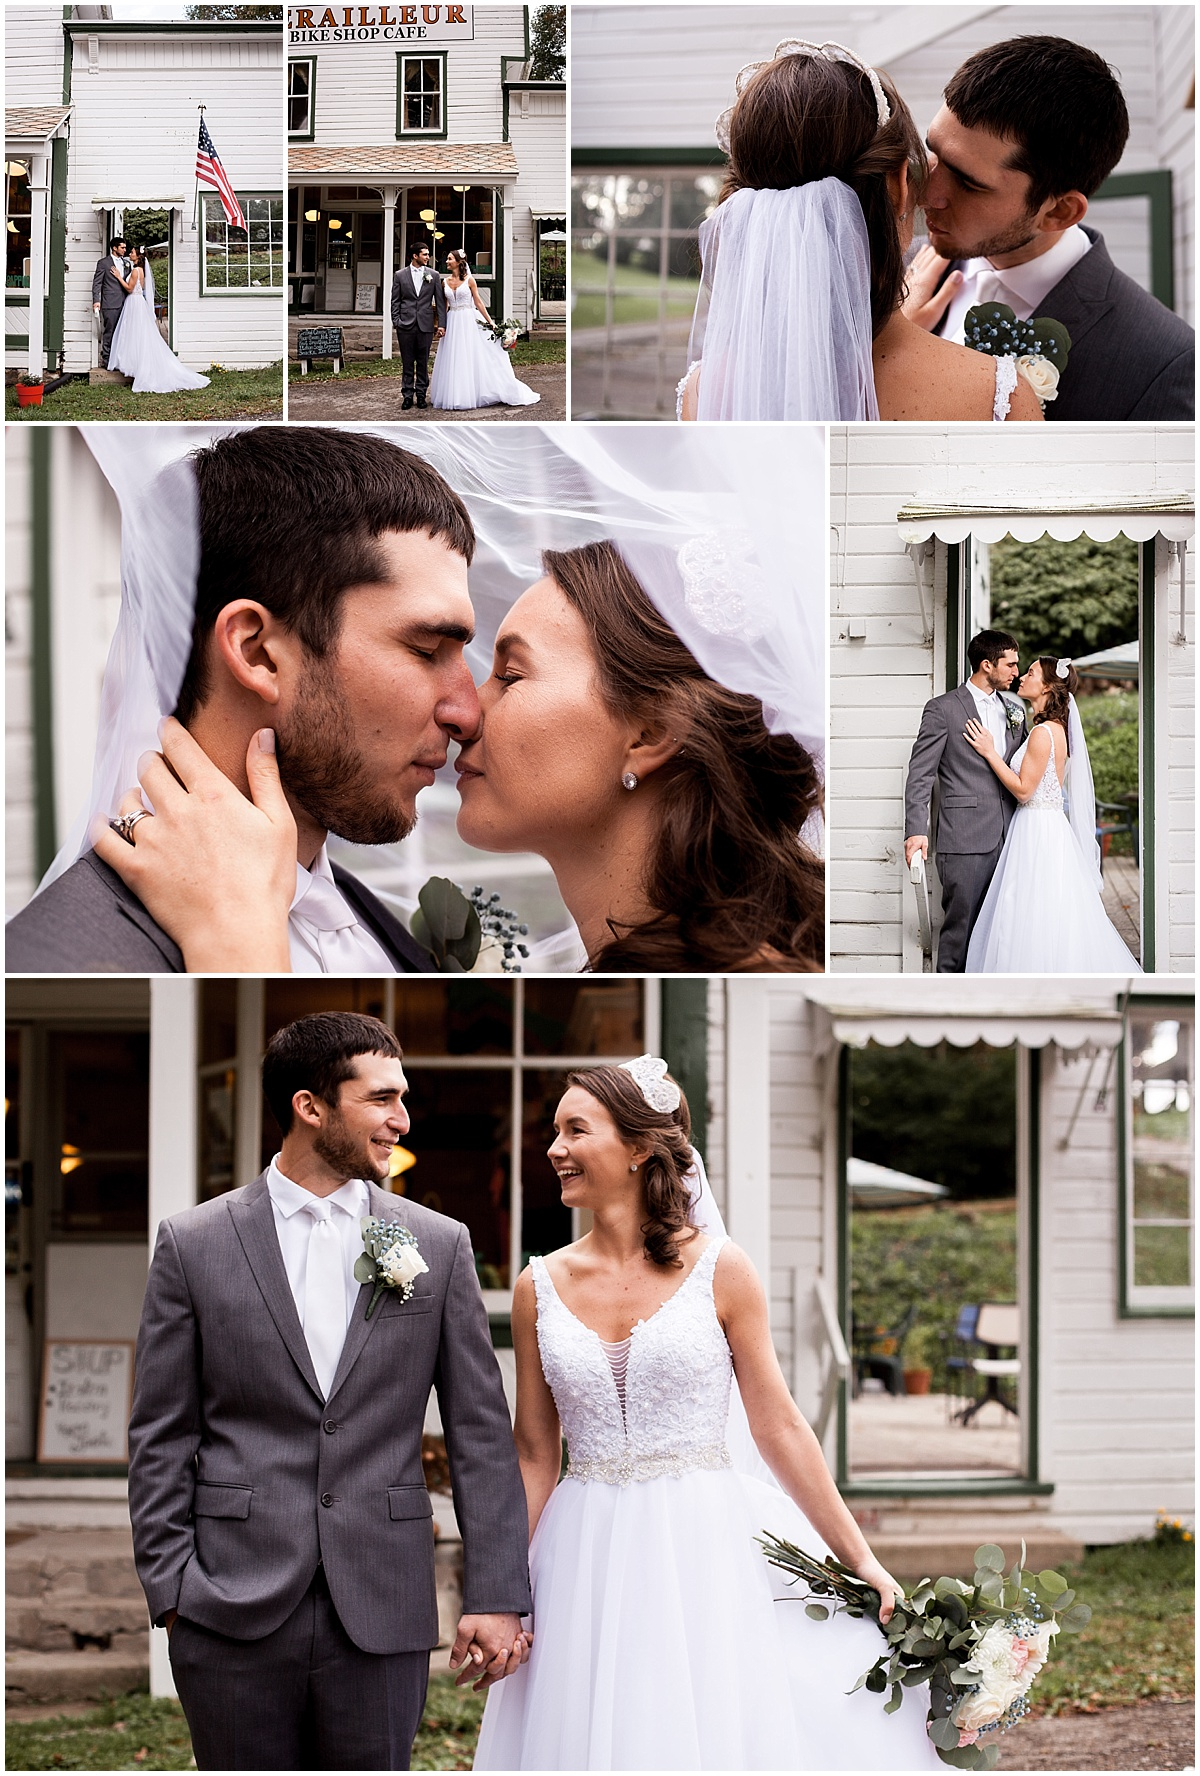 bride and groom portraits at derailur bike cafe herman pa photographer